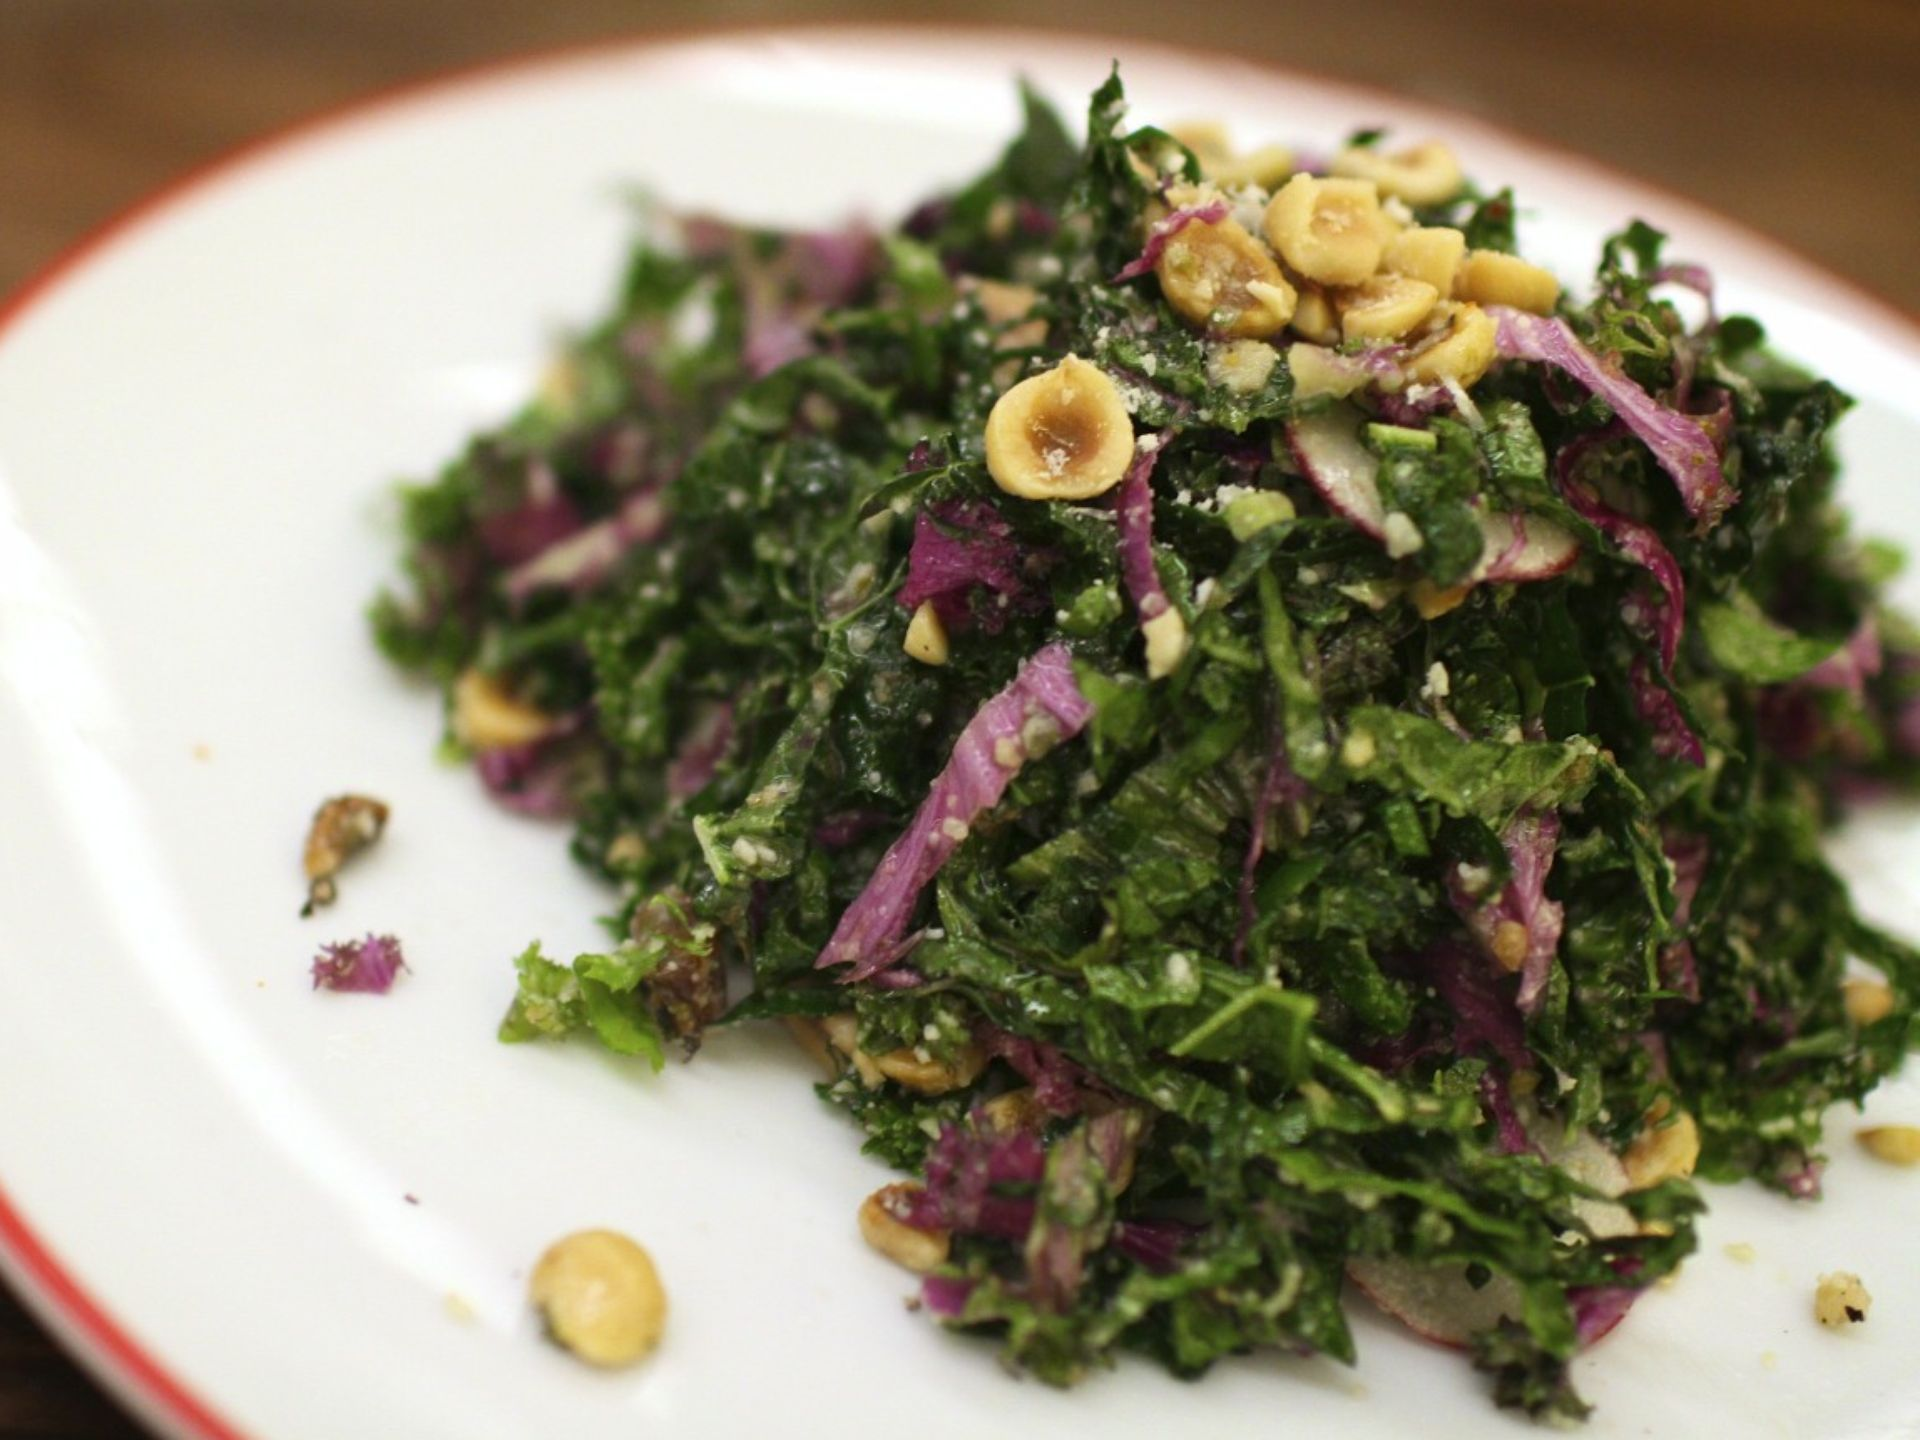 Farmers Fishers Bakers Purple and Black Kale Salad is recommended as a